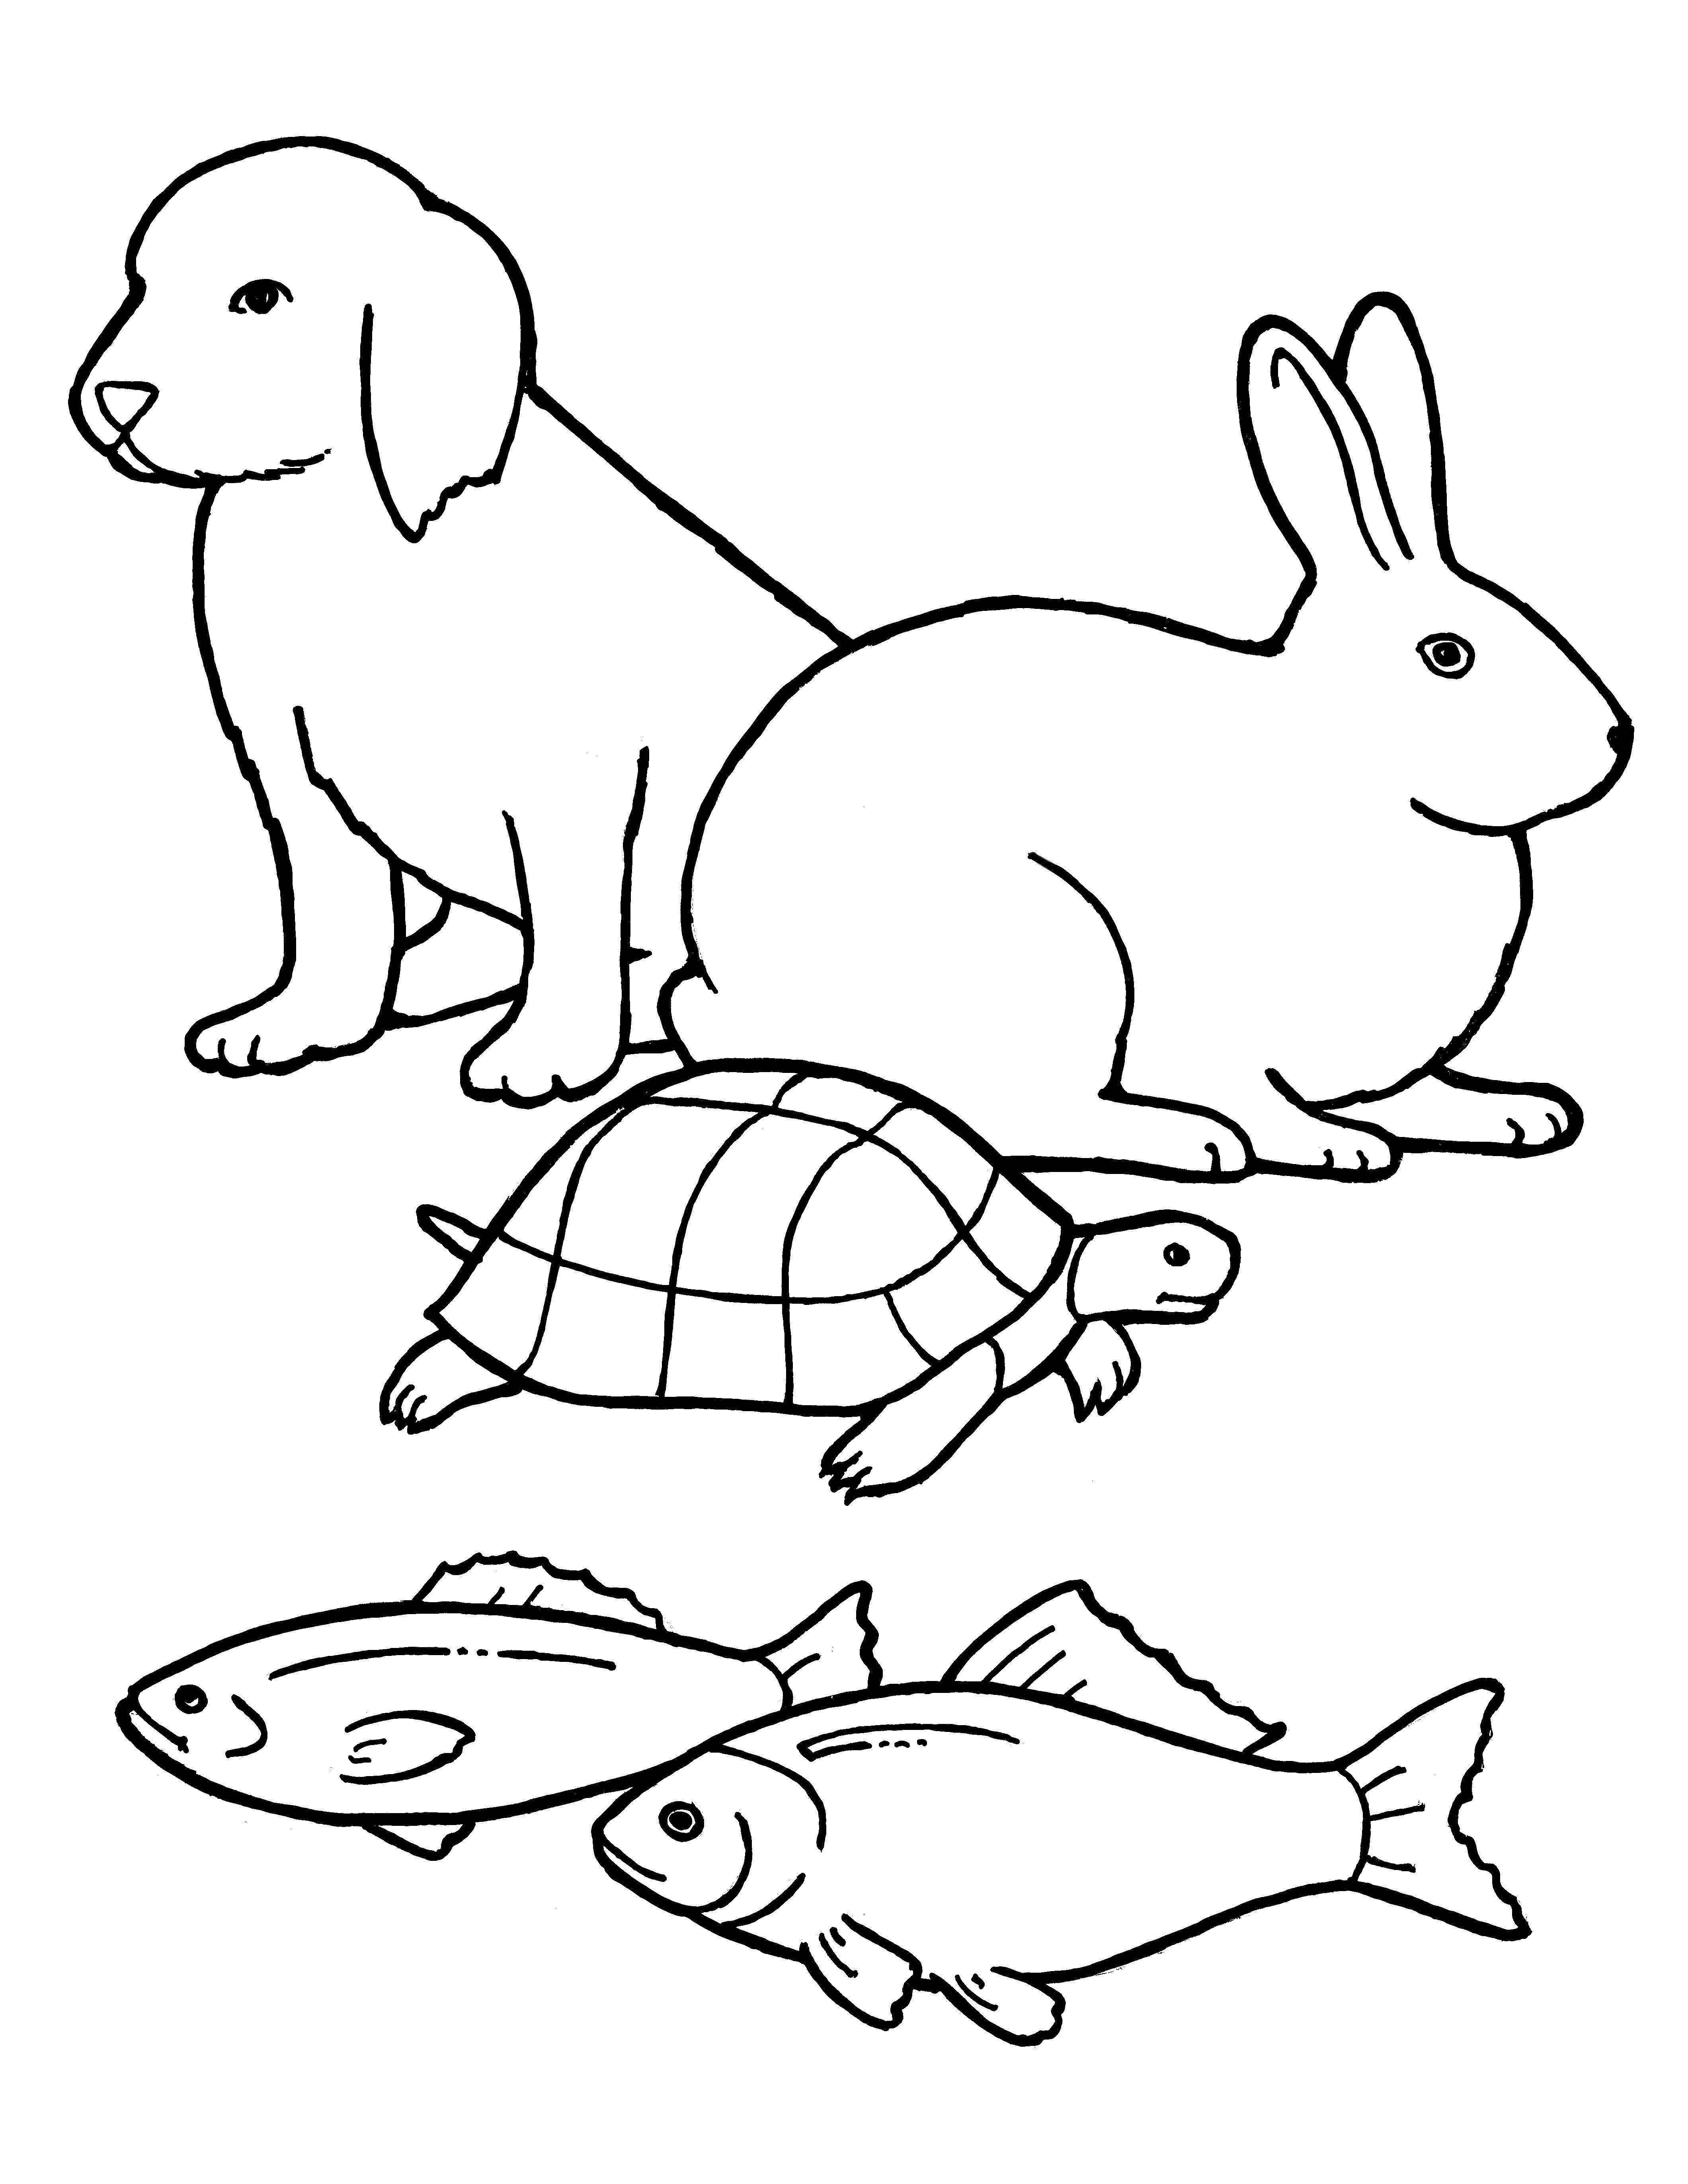 A line drawing of animals from the nursery manual Behold Your Little Ones (2008), page 35.